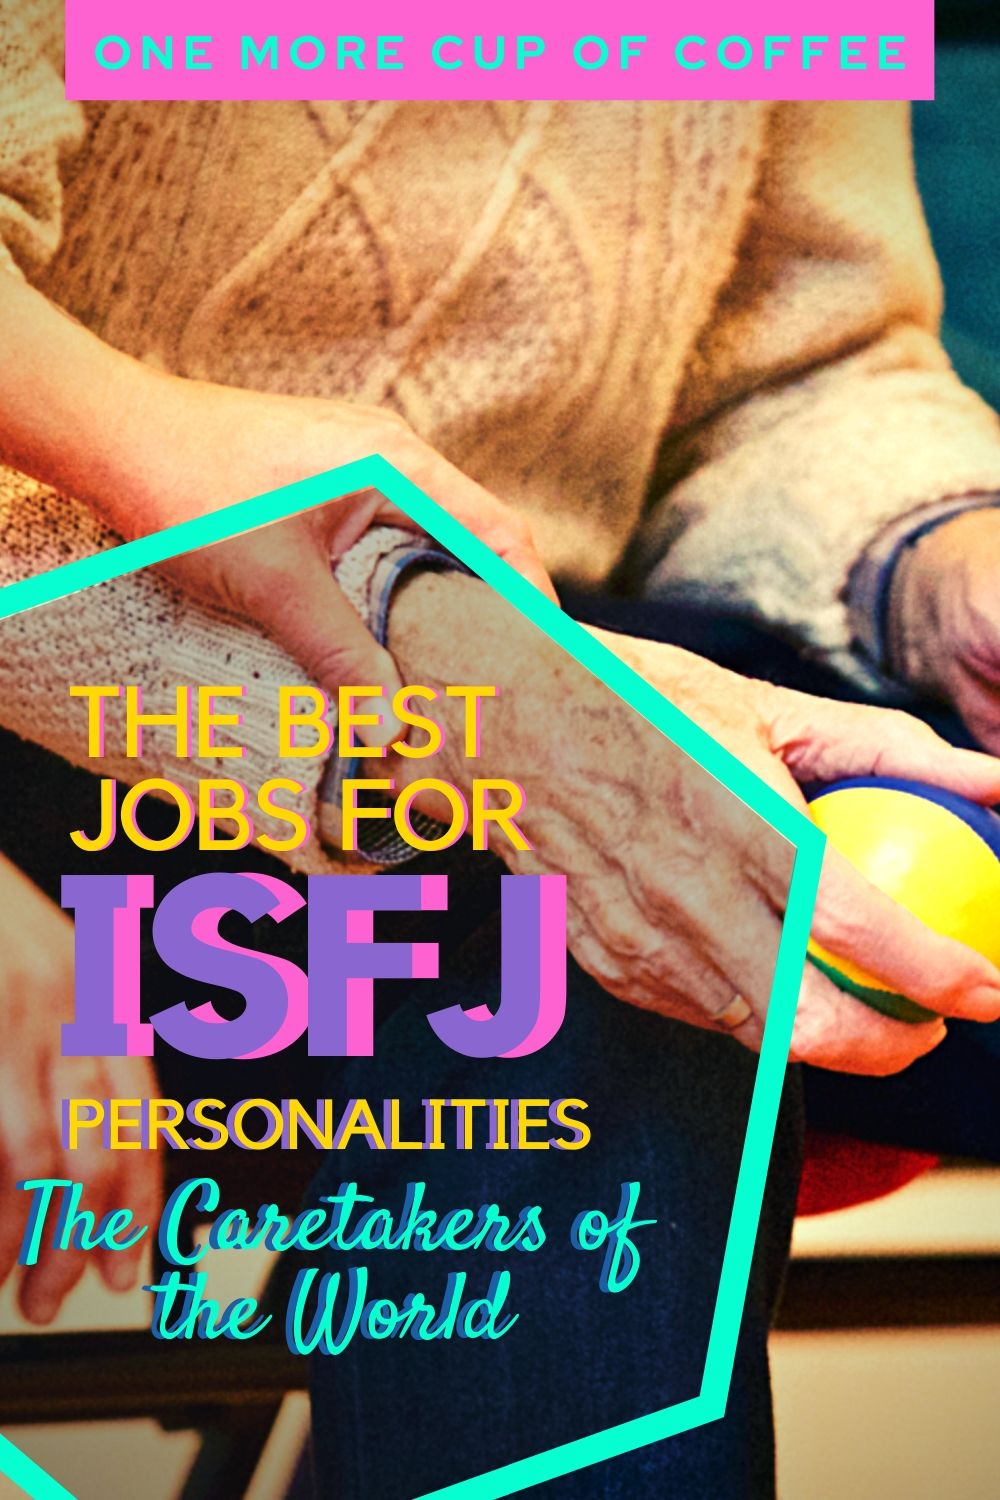 Caregiver holding an elderly hand representing the best jobs for ISFJ personalities!